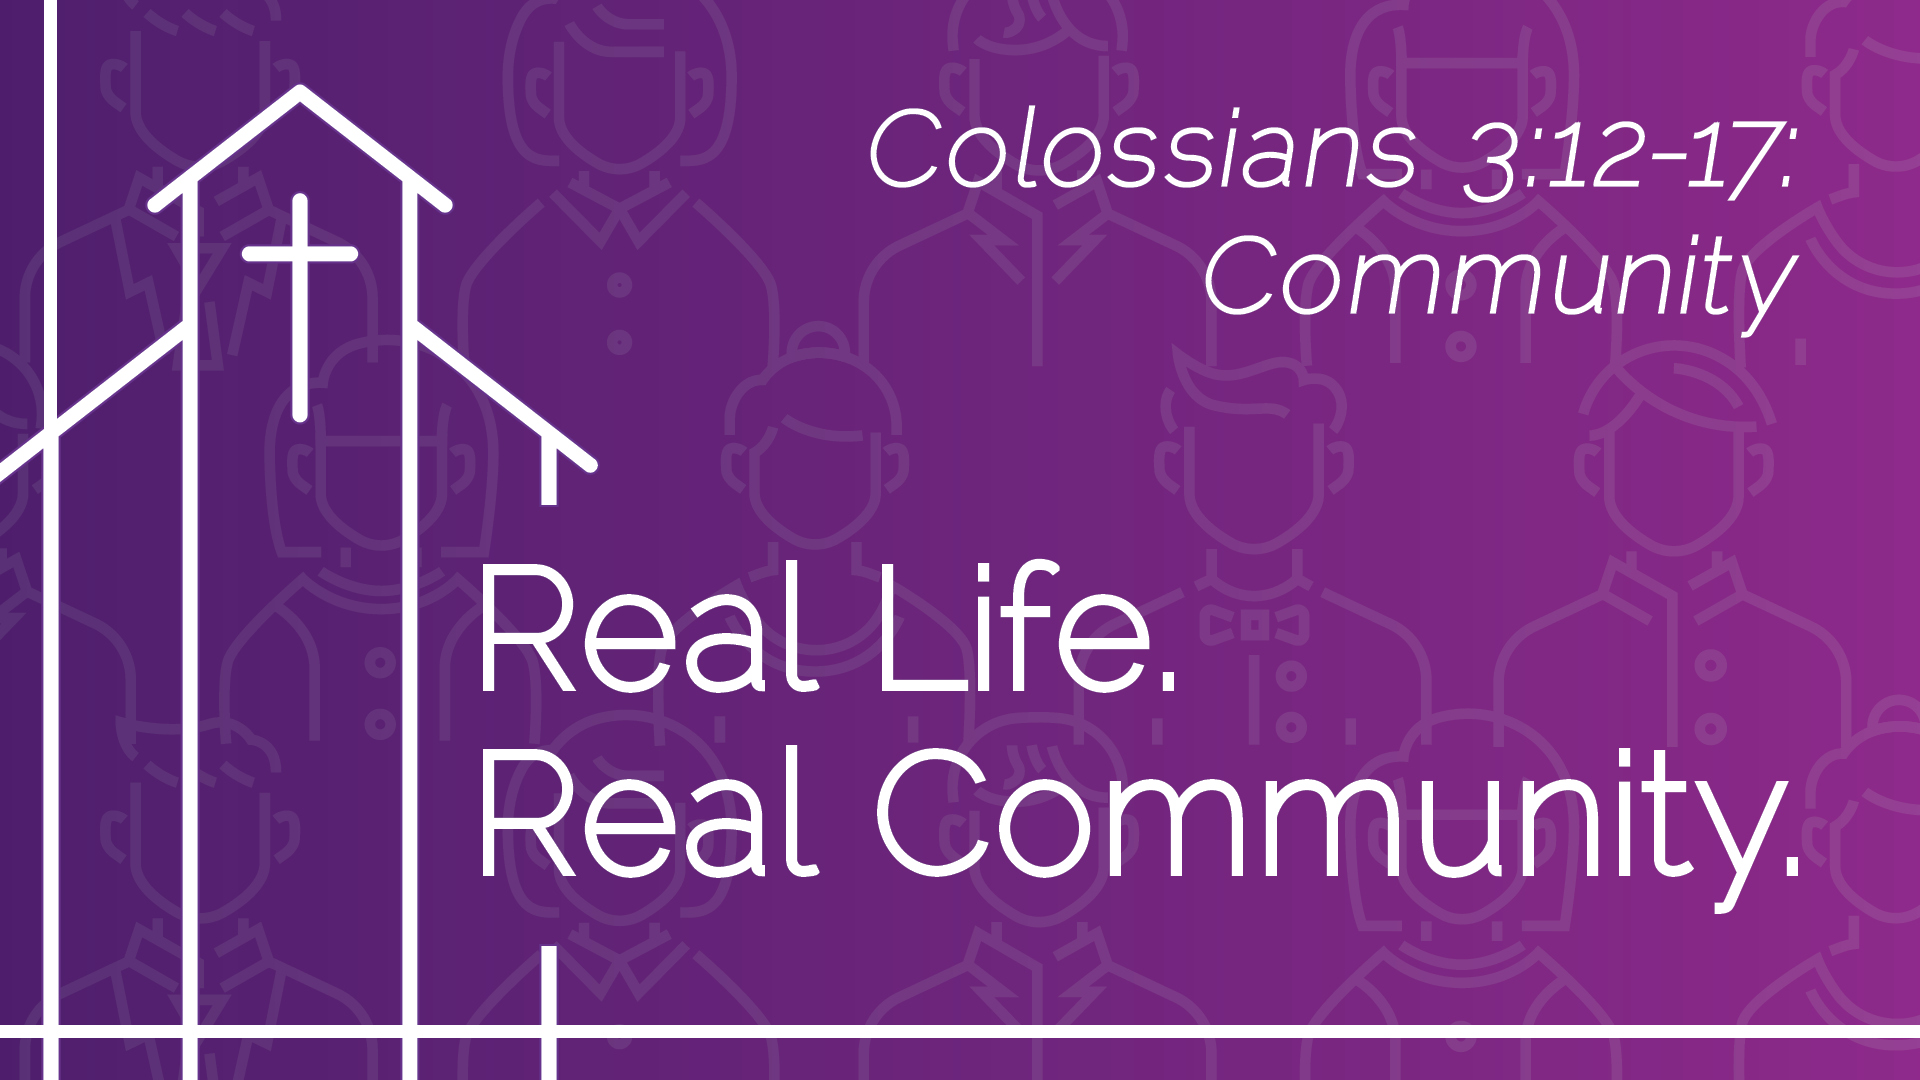 Real Community FEB21